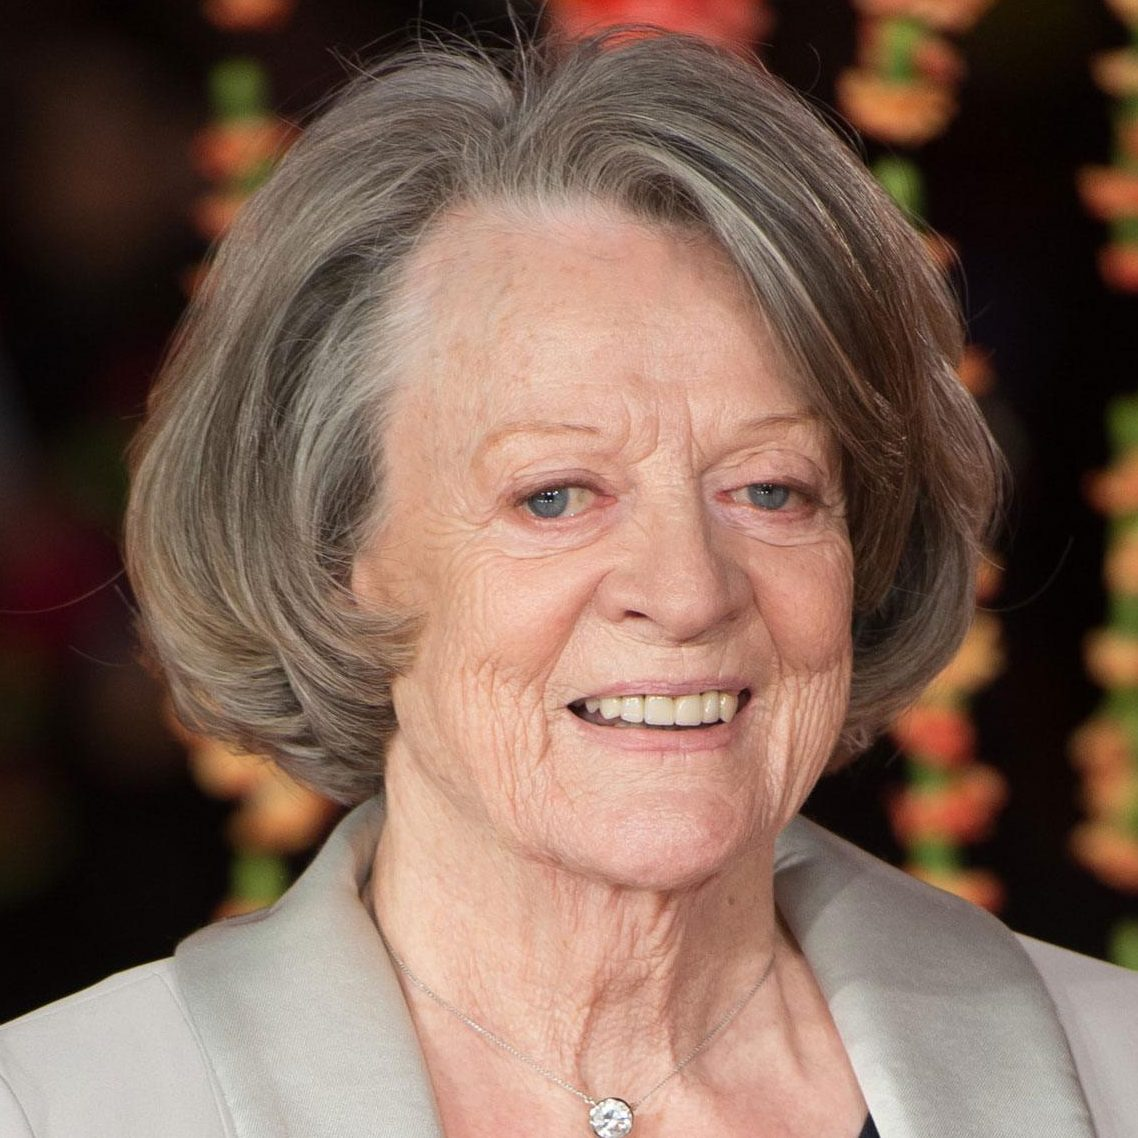 Maggie Smith British actress 2015 e1601995905484 20 Things You Probably Didn't Know About Kathleen Turner